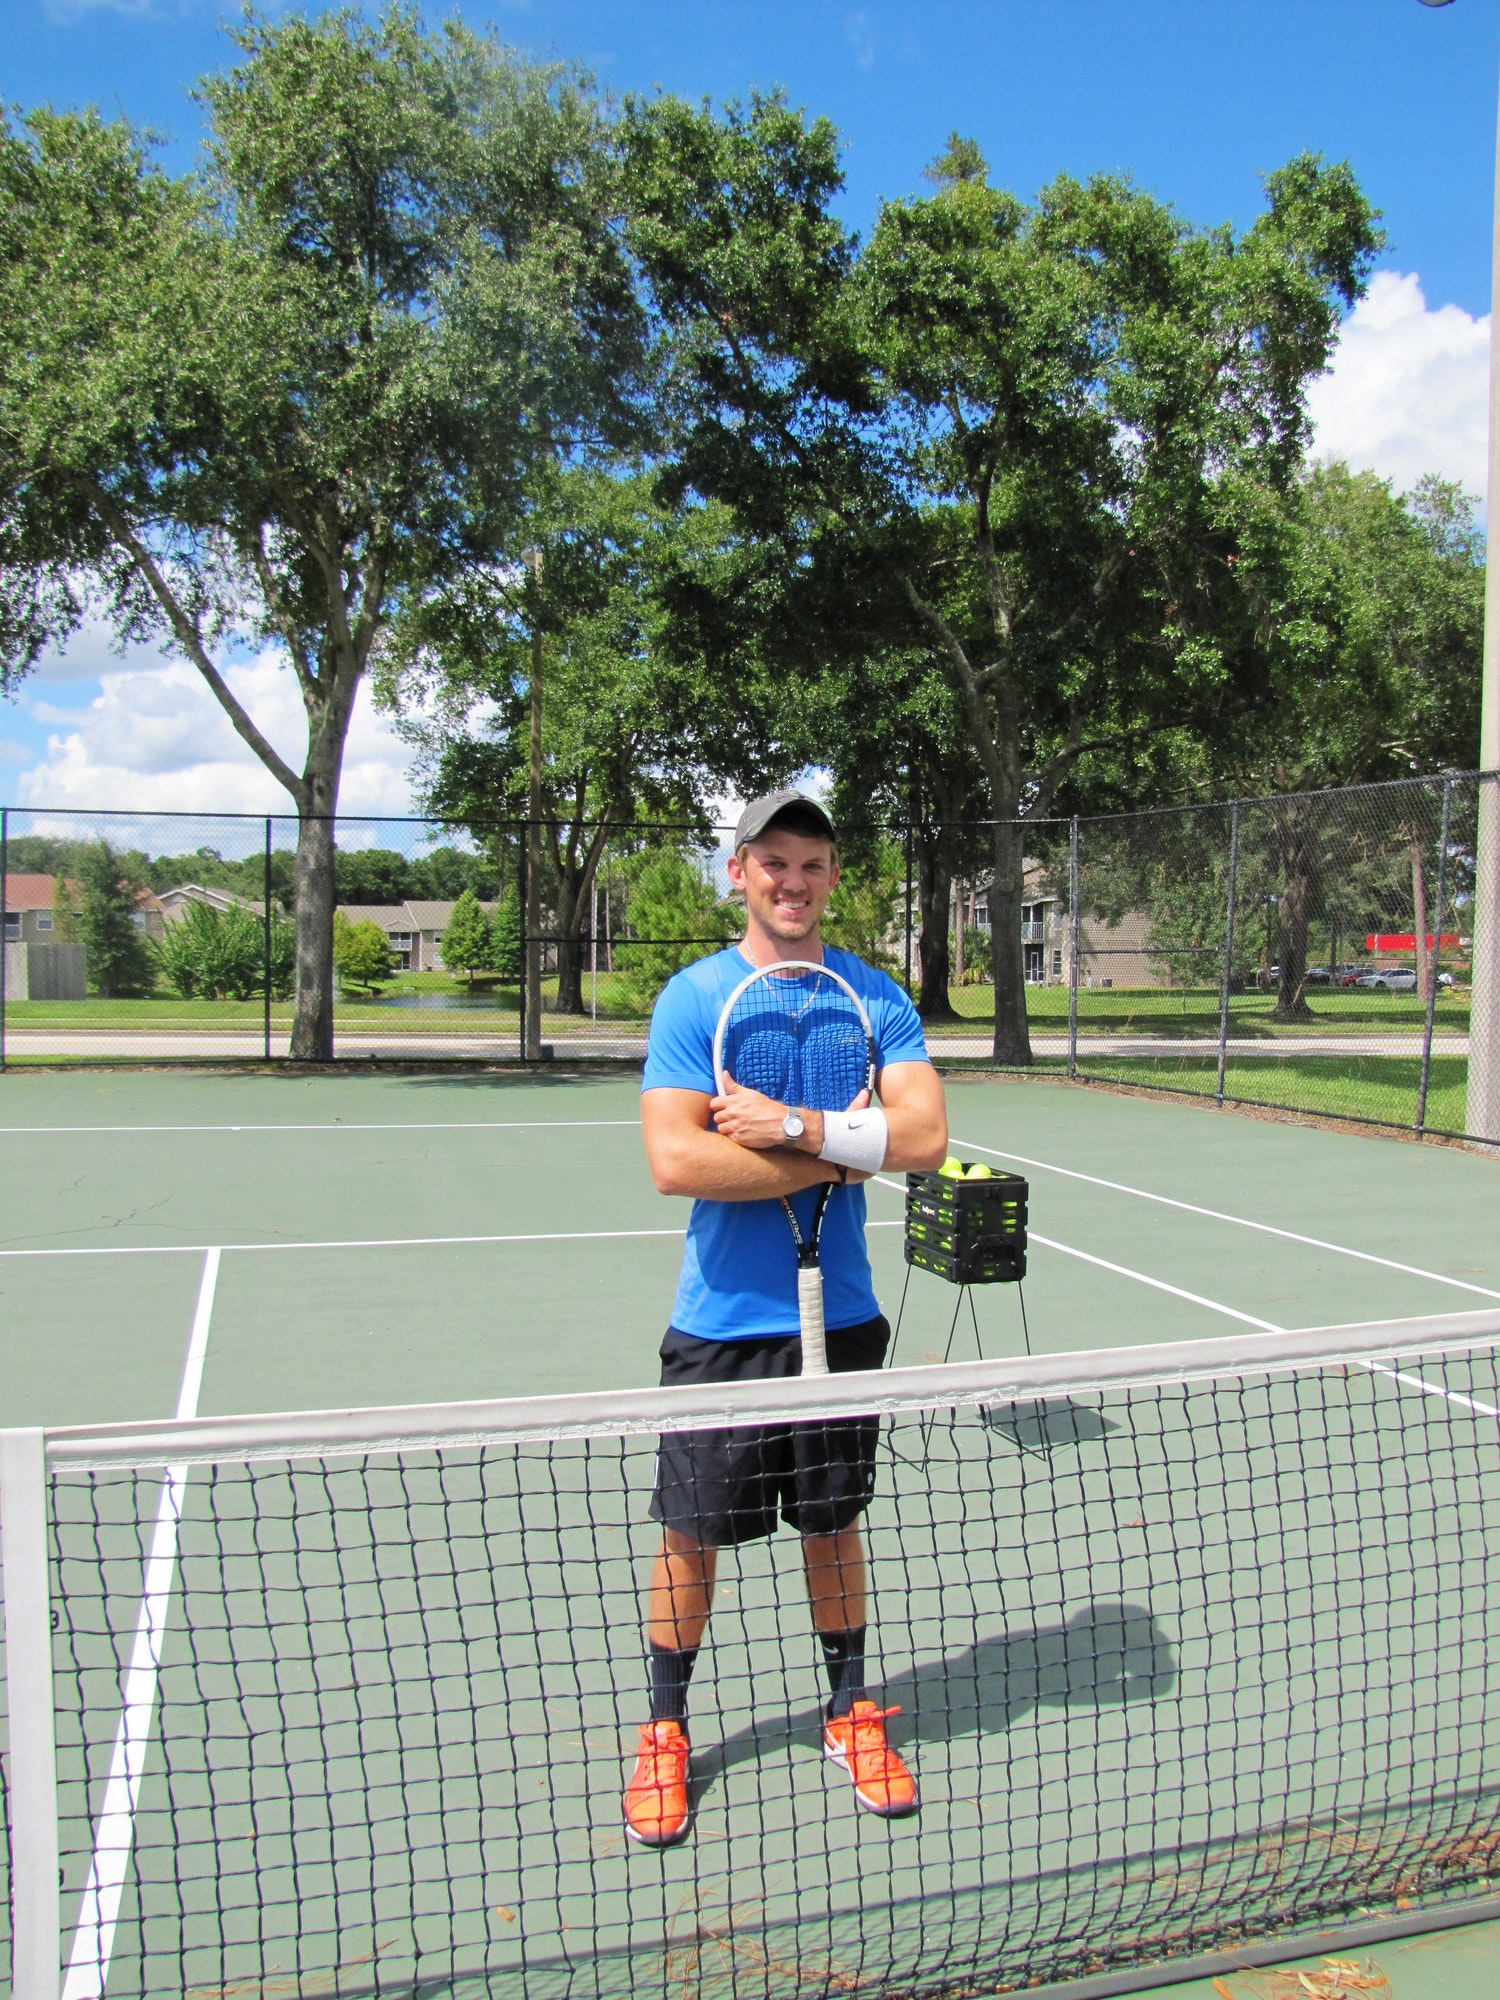 Zachary H. teaches tennis lessons in Orlando, FL